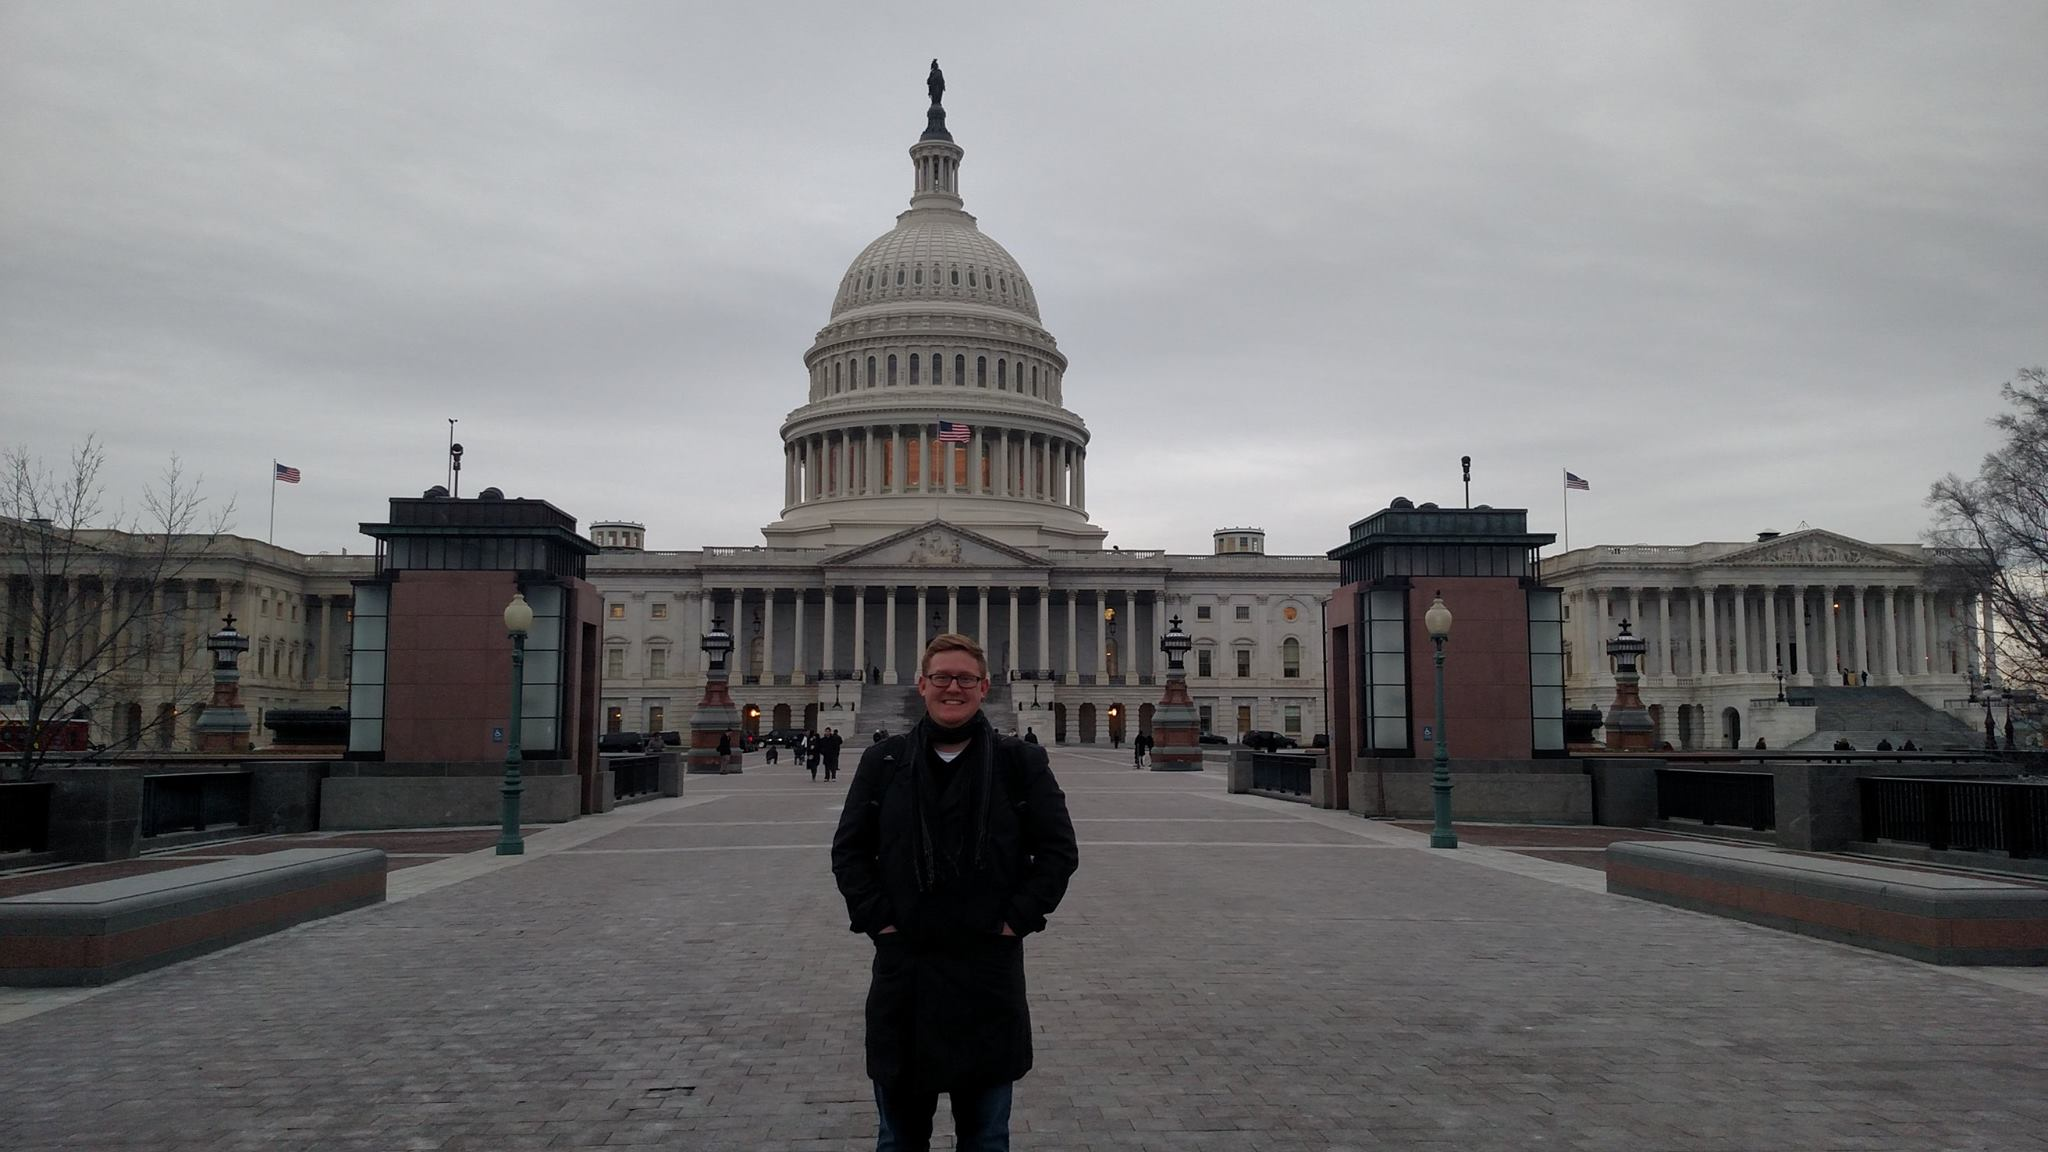 Jacob standing in front of the US Capitol